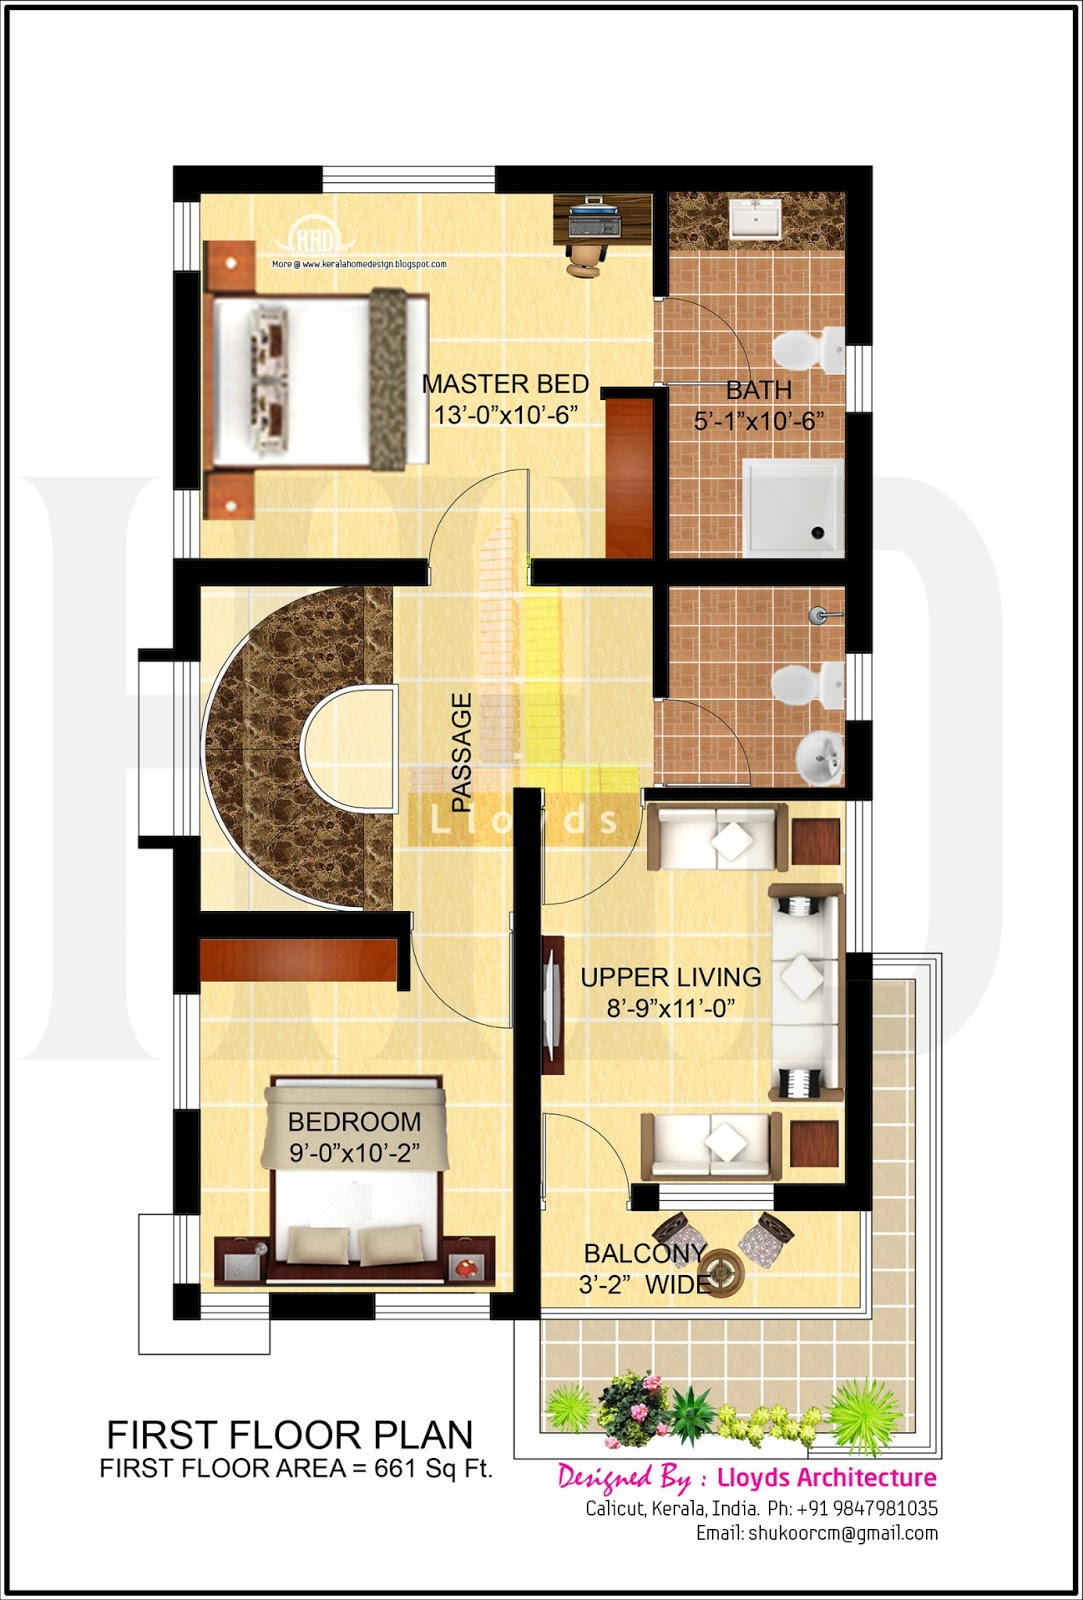 4 bedroom house plan in less than 3 cents kerala home for 3 floor house design